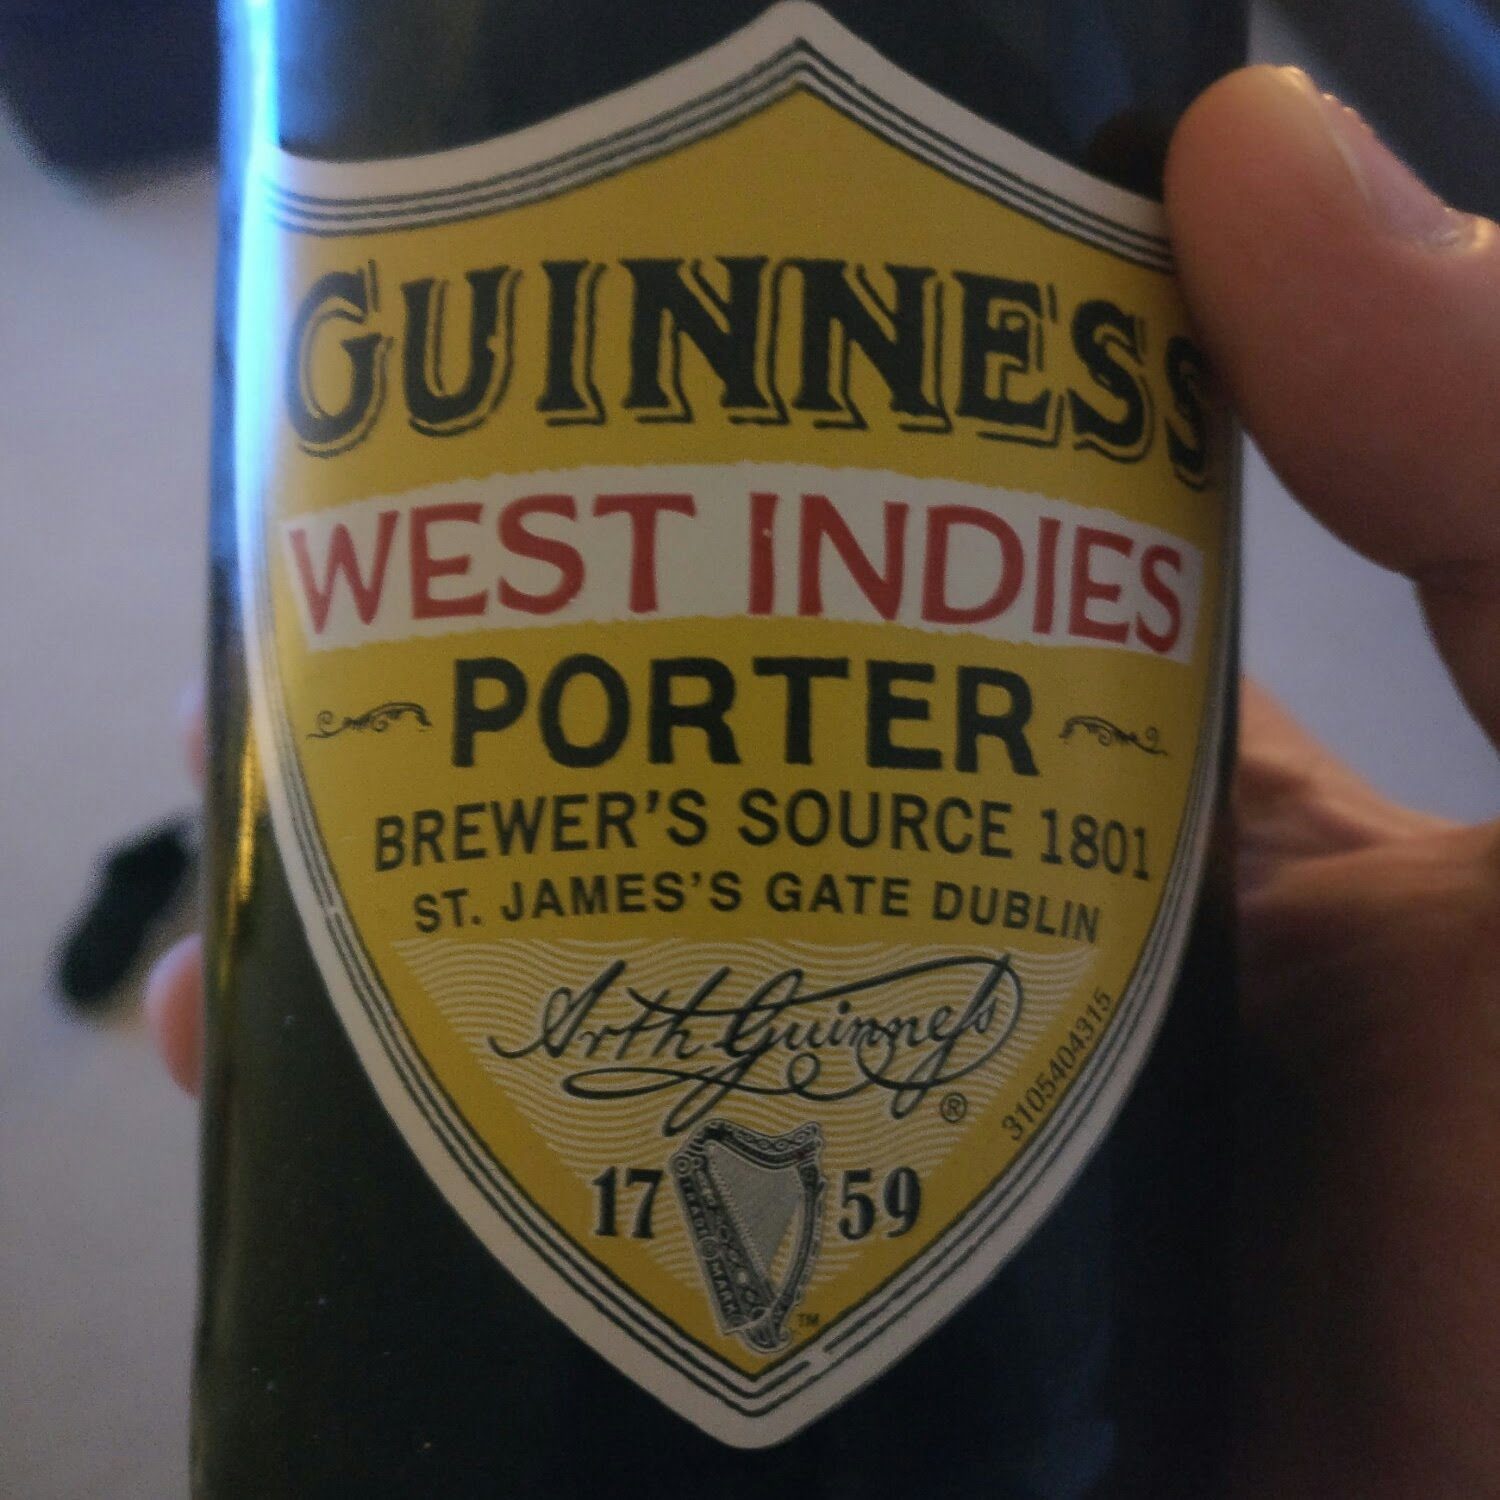 Guinness - West Indies Porter